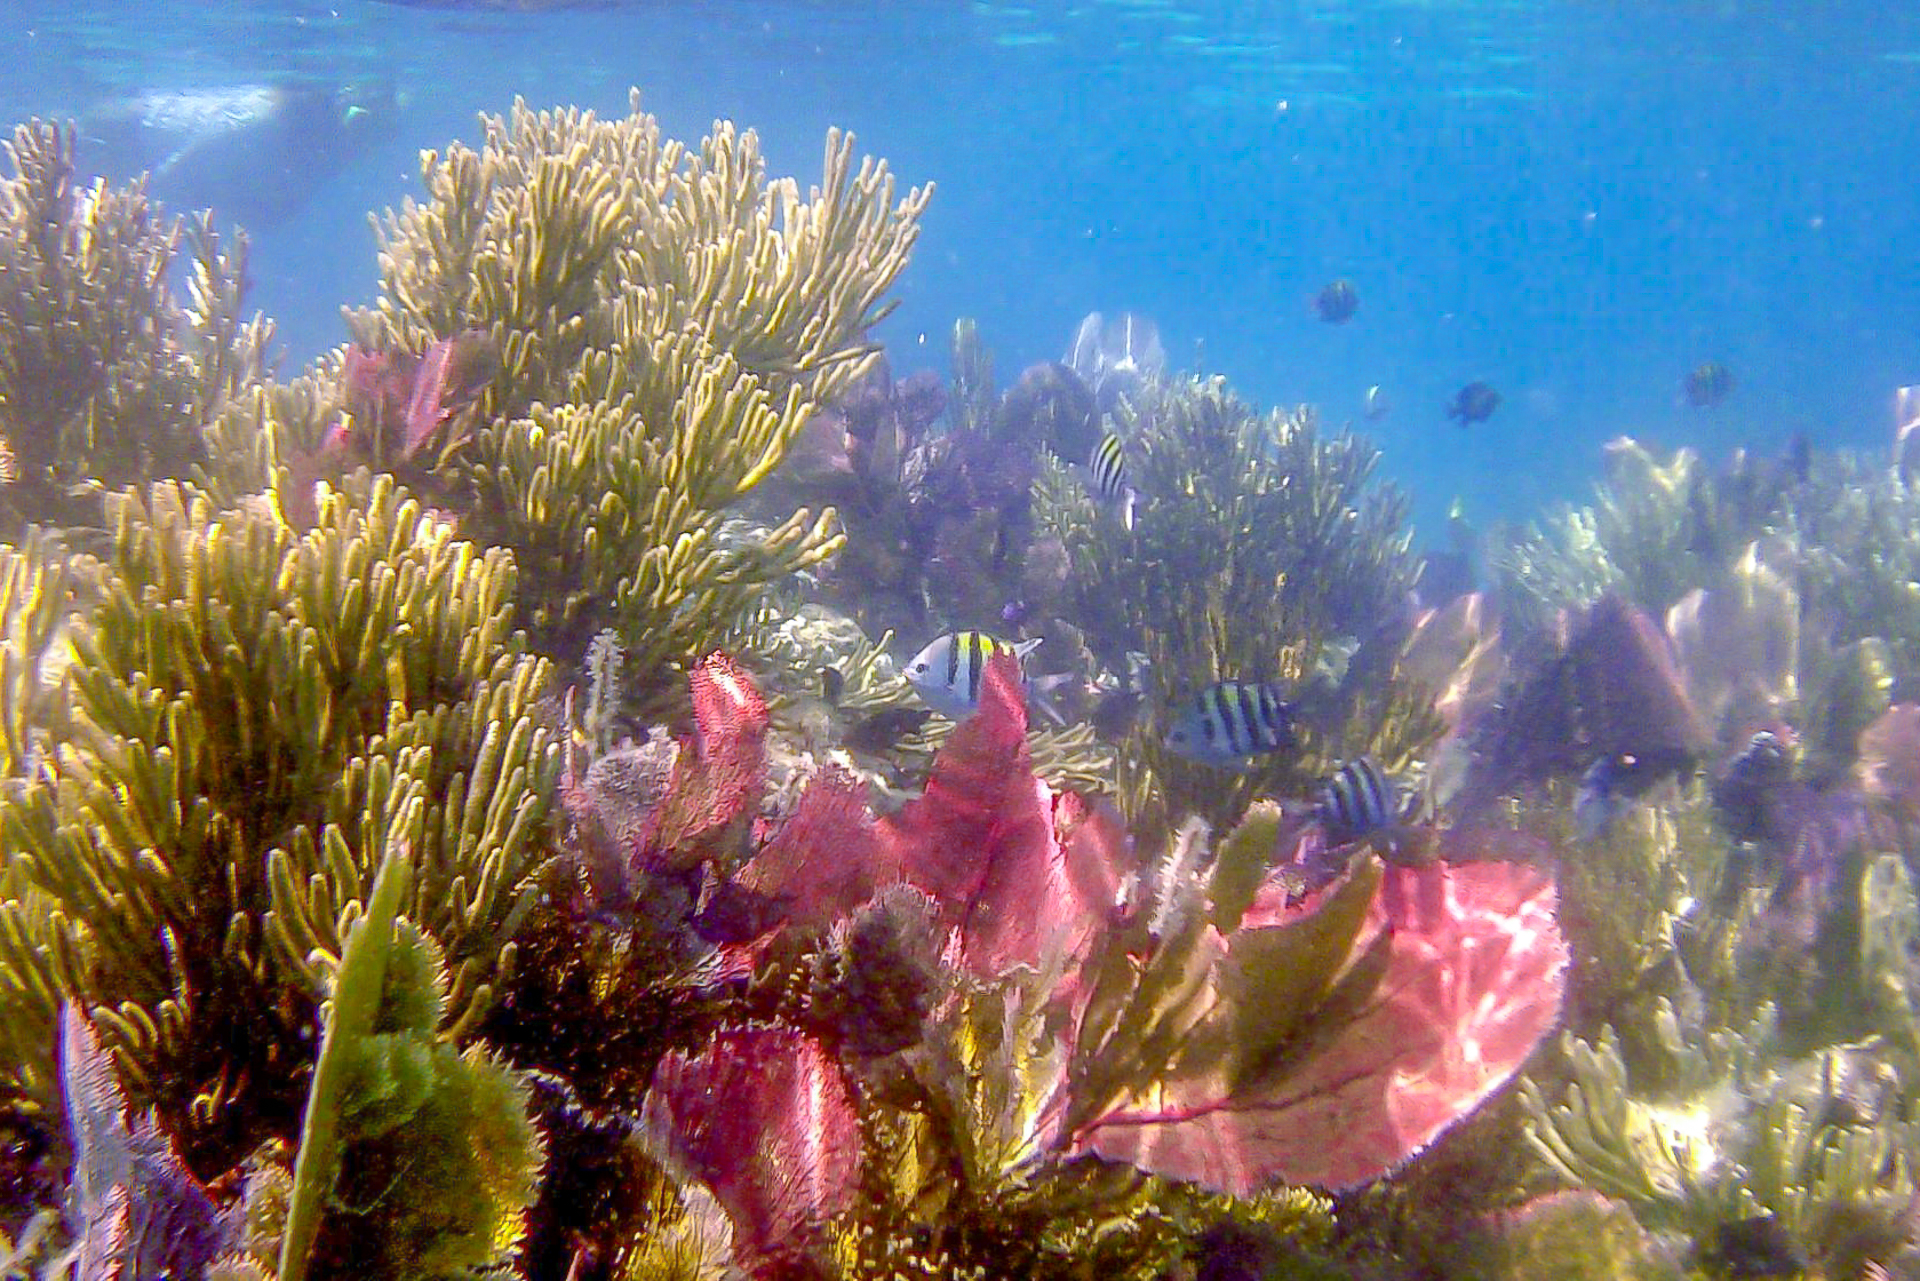 Coral close to Ambergris Caye, Belize